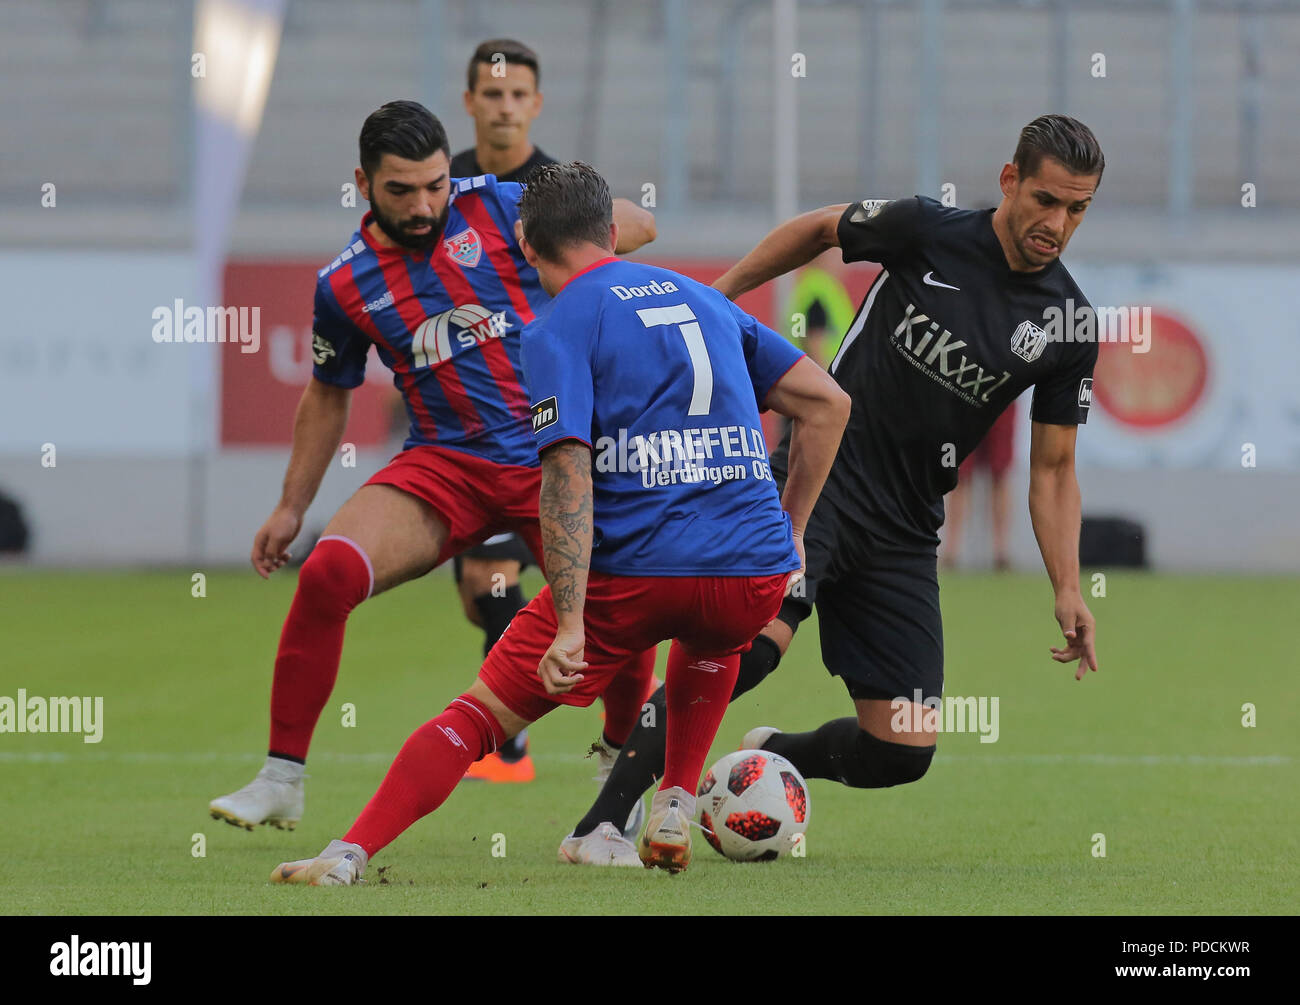 Duisburg, Germany. 08th Aug, 2018. Duisburg, Germany August 8 2018, 3rd league matchday 3, KFC Uerdingen 05 vs SV Meppen: Oguzhan Kefkir (KFC), Christian Dorda (KFC), Luka Tankulic (SVM) in competition. Credit: Juergen Schwarz/Alamy Live News - Stock Image